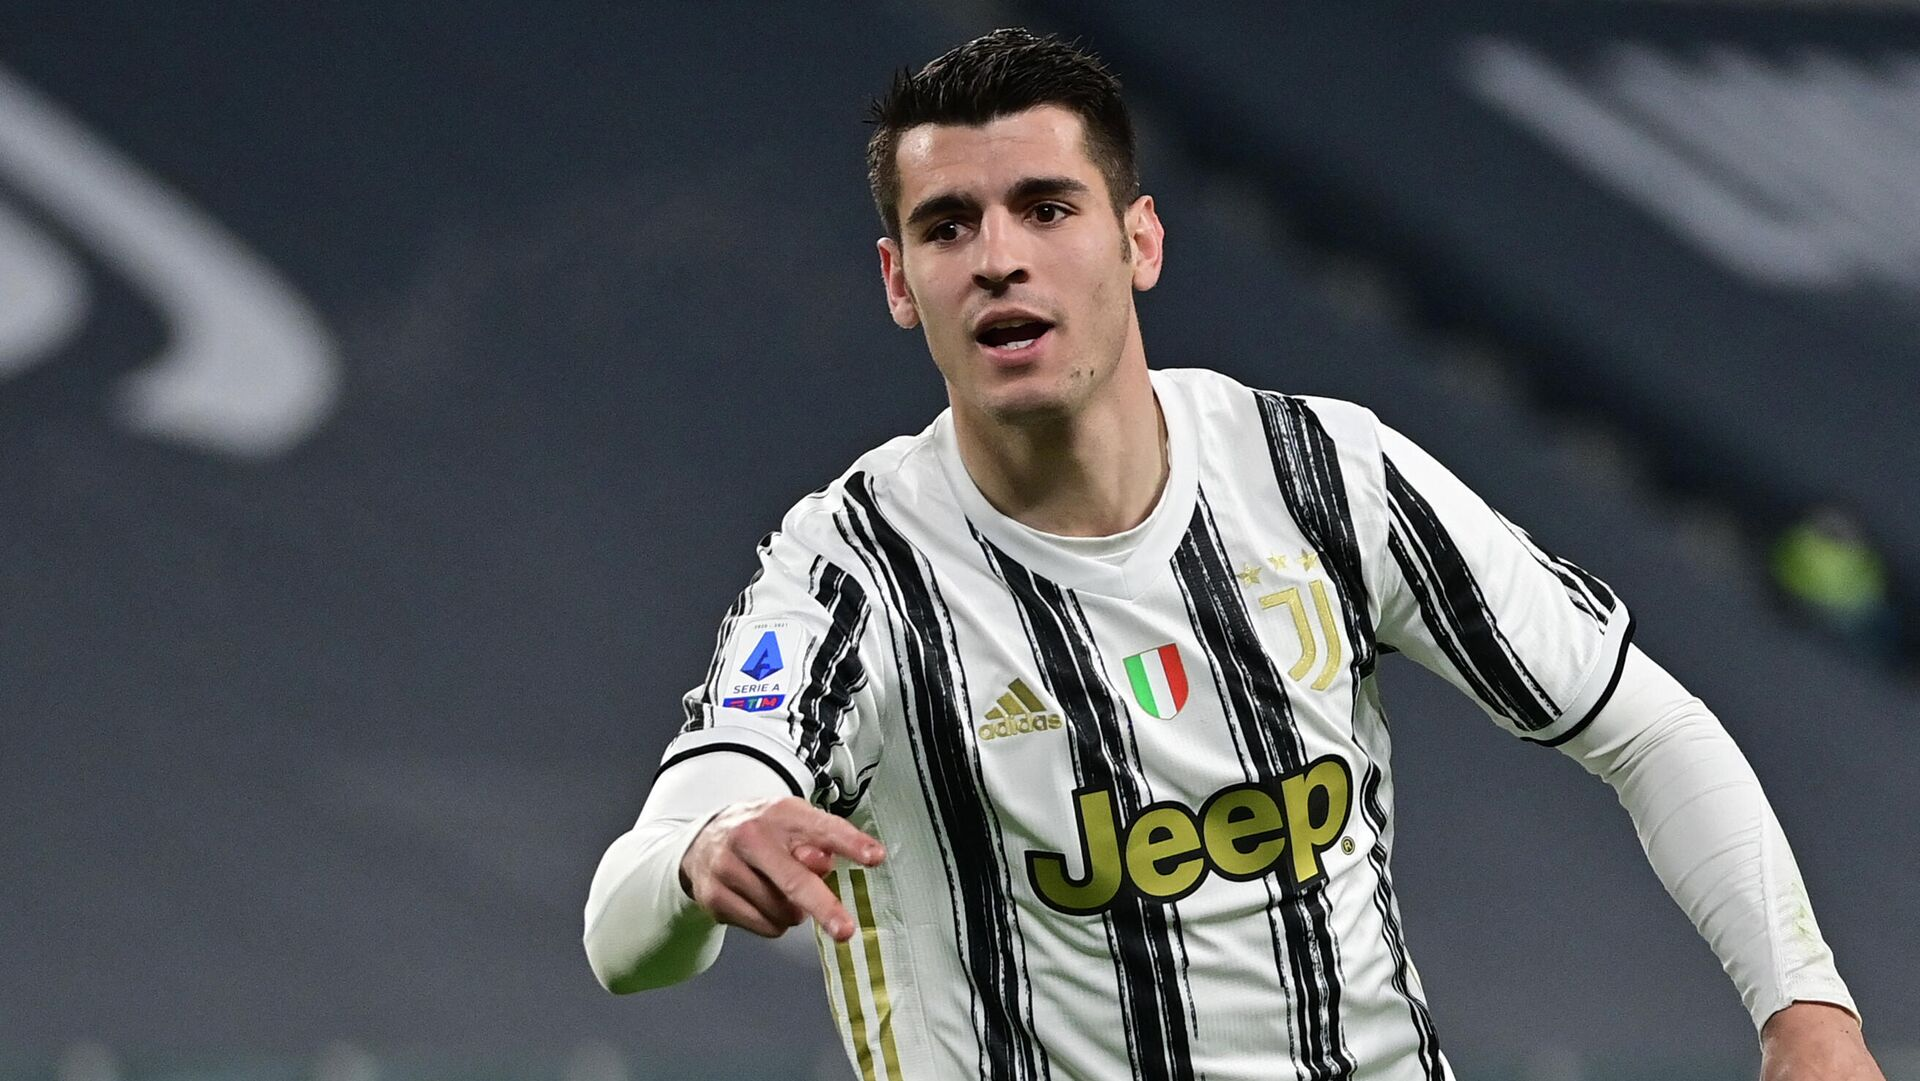 Juventus' Spanish forward Alvaro Morata celebrates after scoring a goal during the Italian Serie A football match between Juventus and Lazio at The Juventus Stadium in Turin, northern Italy on March 6, 2021. (Photo by MIGUEL MEDINA / AFP) - РИА Новости, 1920, 15.06.2021